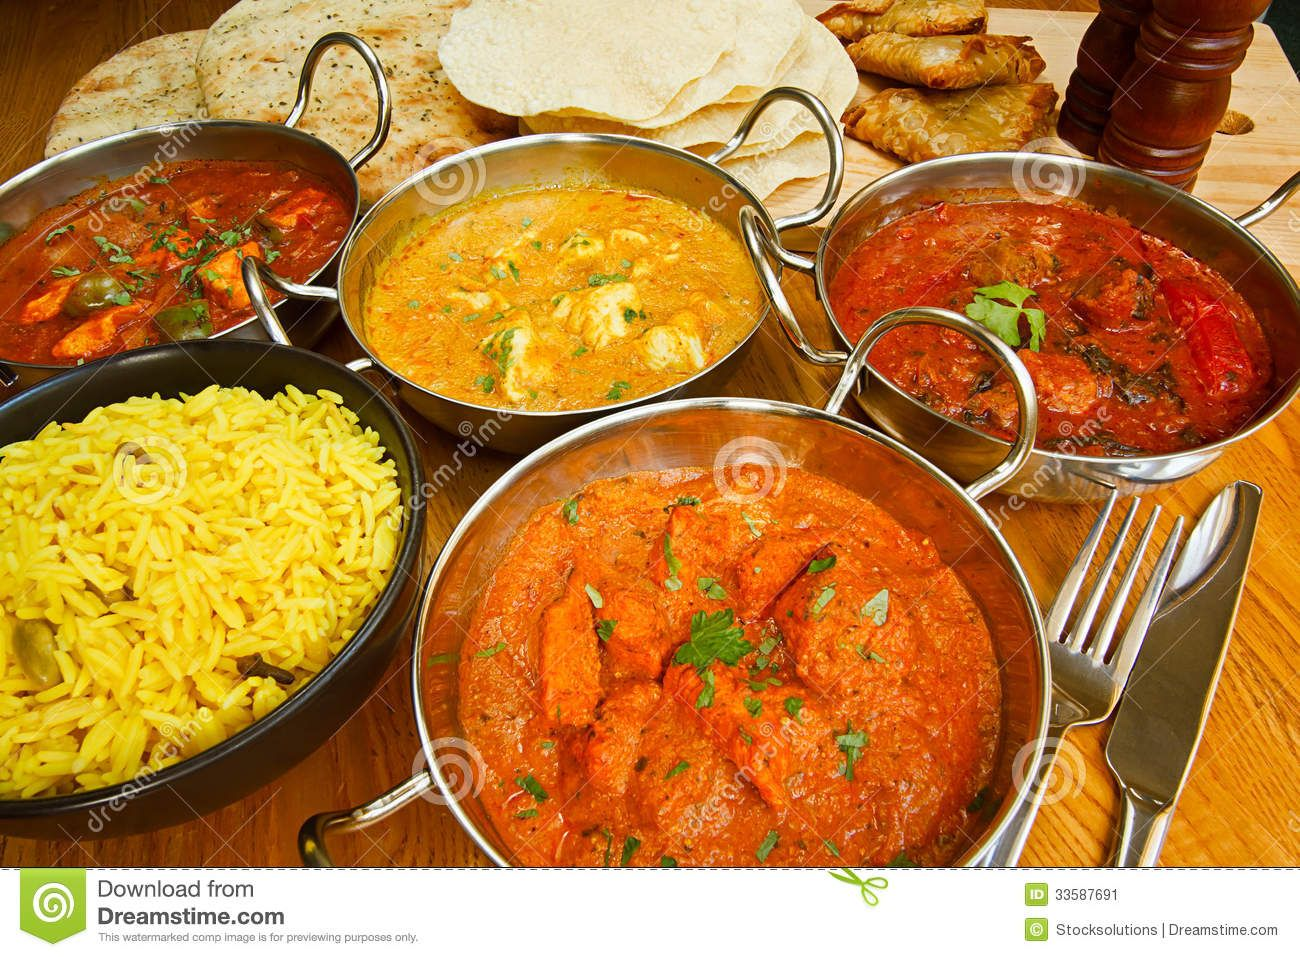 Indian cuisine buffet stock image image 33587691 indonesian indian cuisine buffet stock image image 33587691 forumfinder Image collections